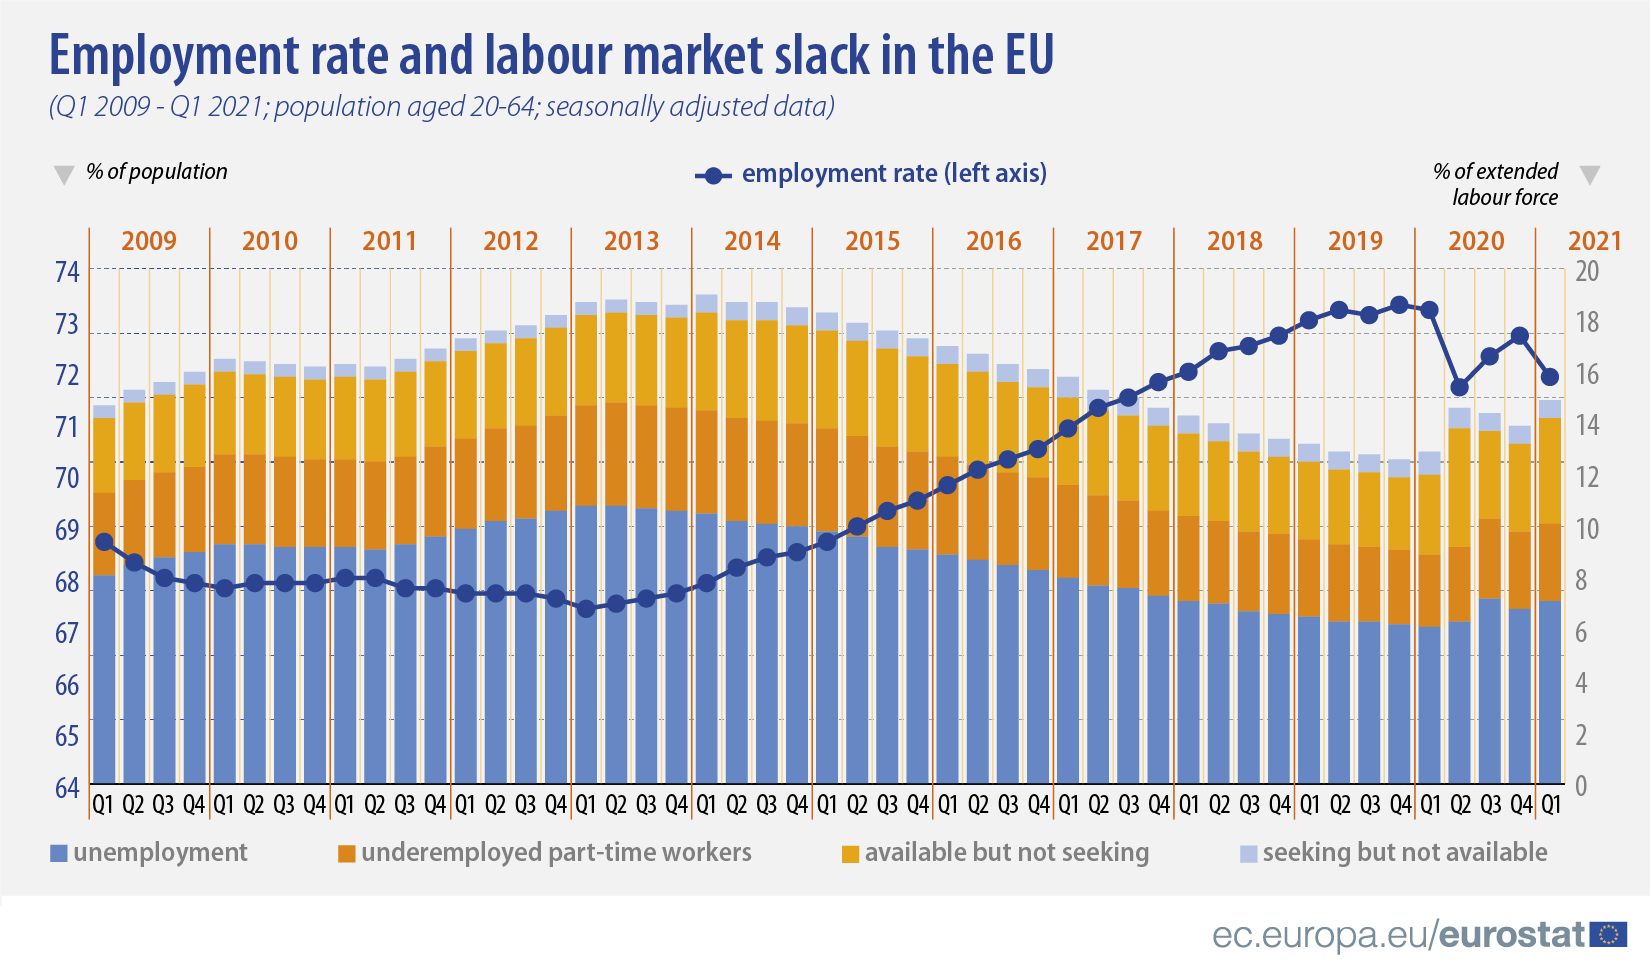 Employment rate and labour market slack in the EU, Q1 2009 - Q1 2021, population aged 20-64, seasonally adjusted data, in %